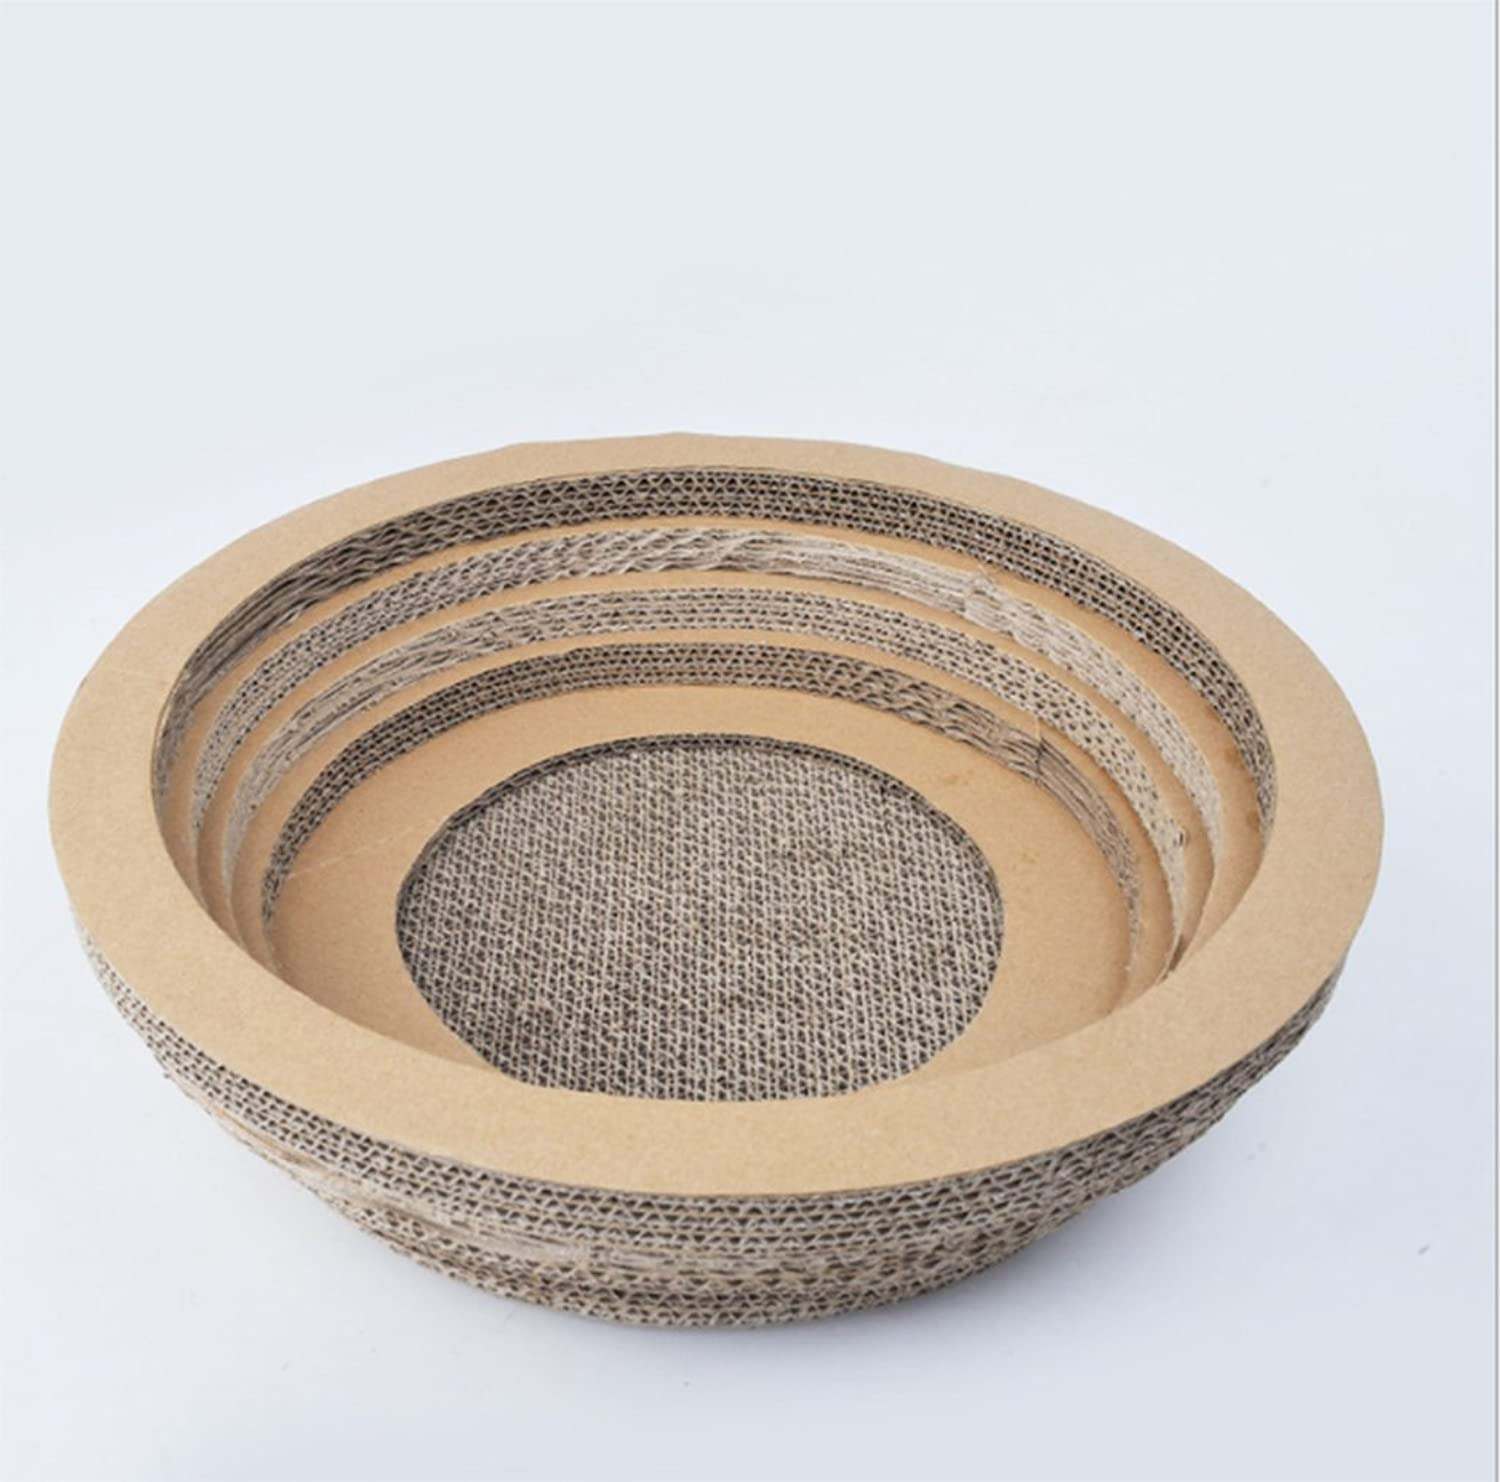 ABGLKMY Modern Creative Corrugated Paper Bowl Cat Litter Cat Scratch Board Cat Bowl Round Cat Scratch Board Cat Corrugated Pet Pet Claws Plate Large